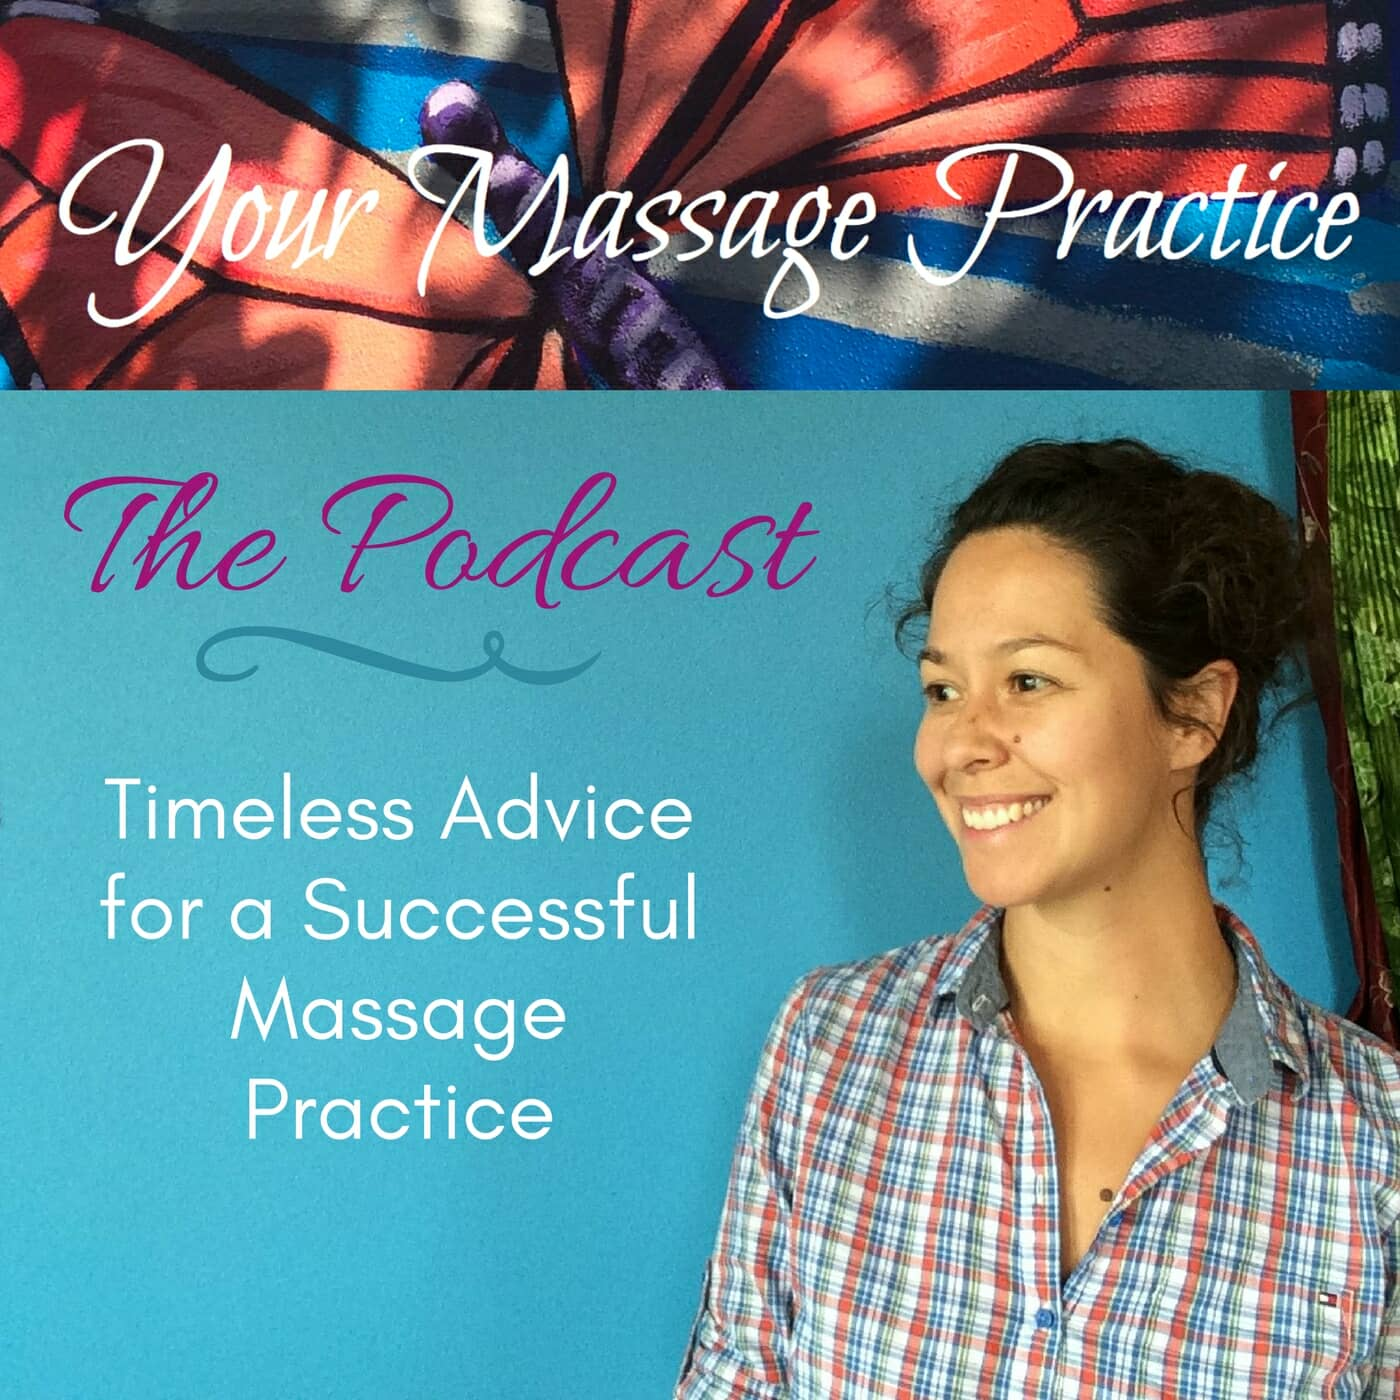 #013: The Freedom of a Full Practice